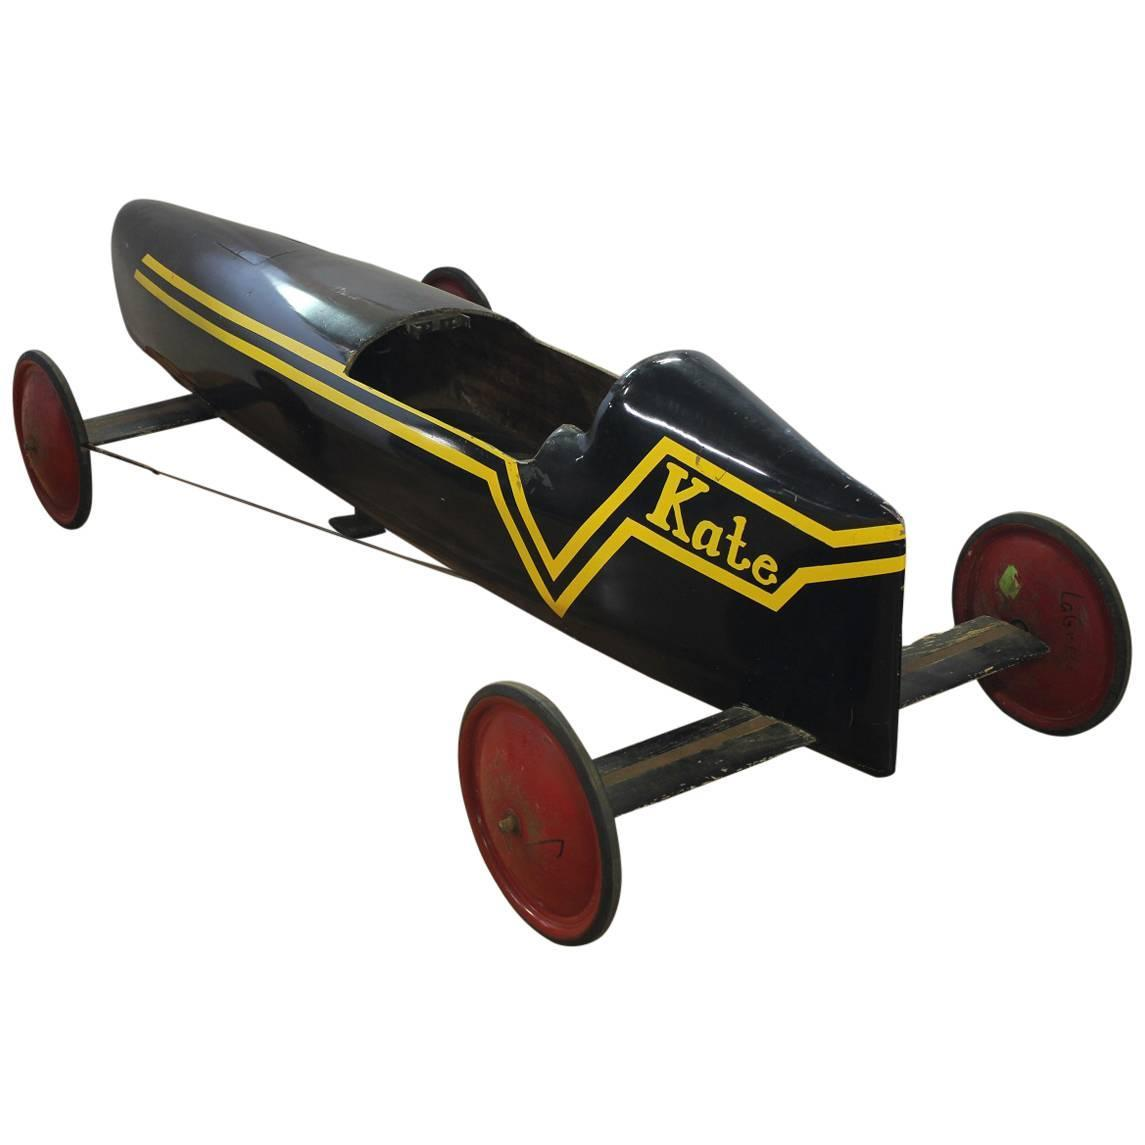 """1950s American Soap Box Derby Car """"Kate"""" For Sale At 1stdibs"""